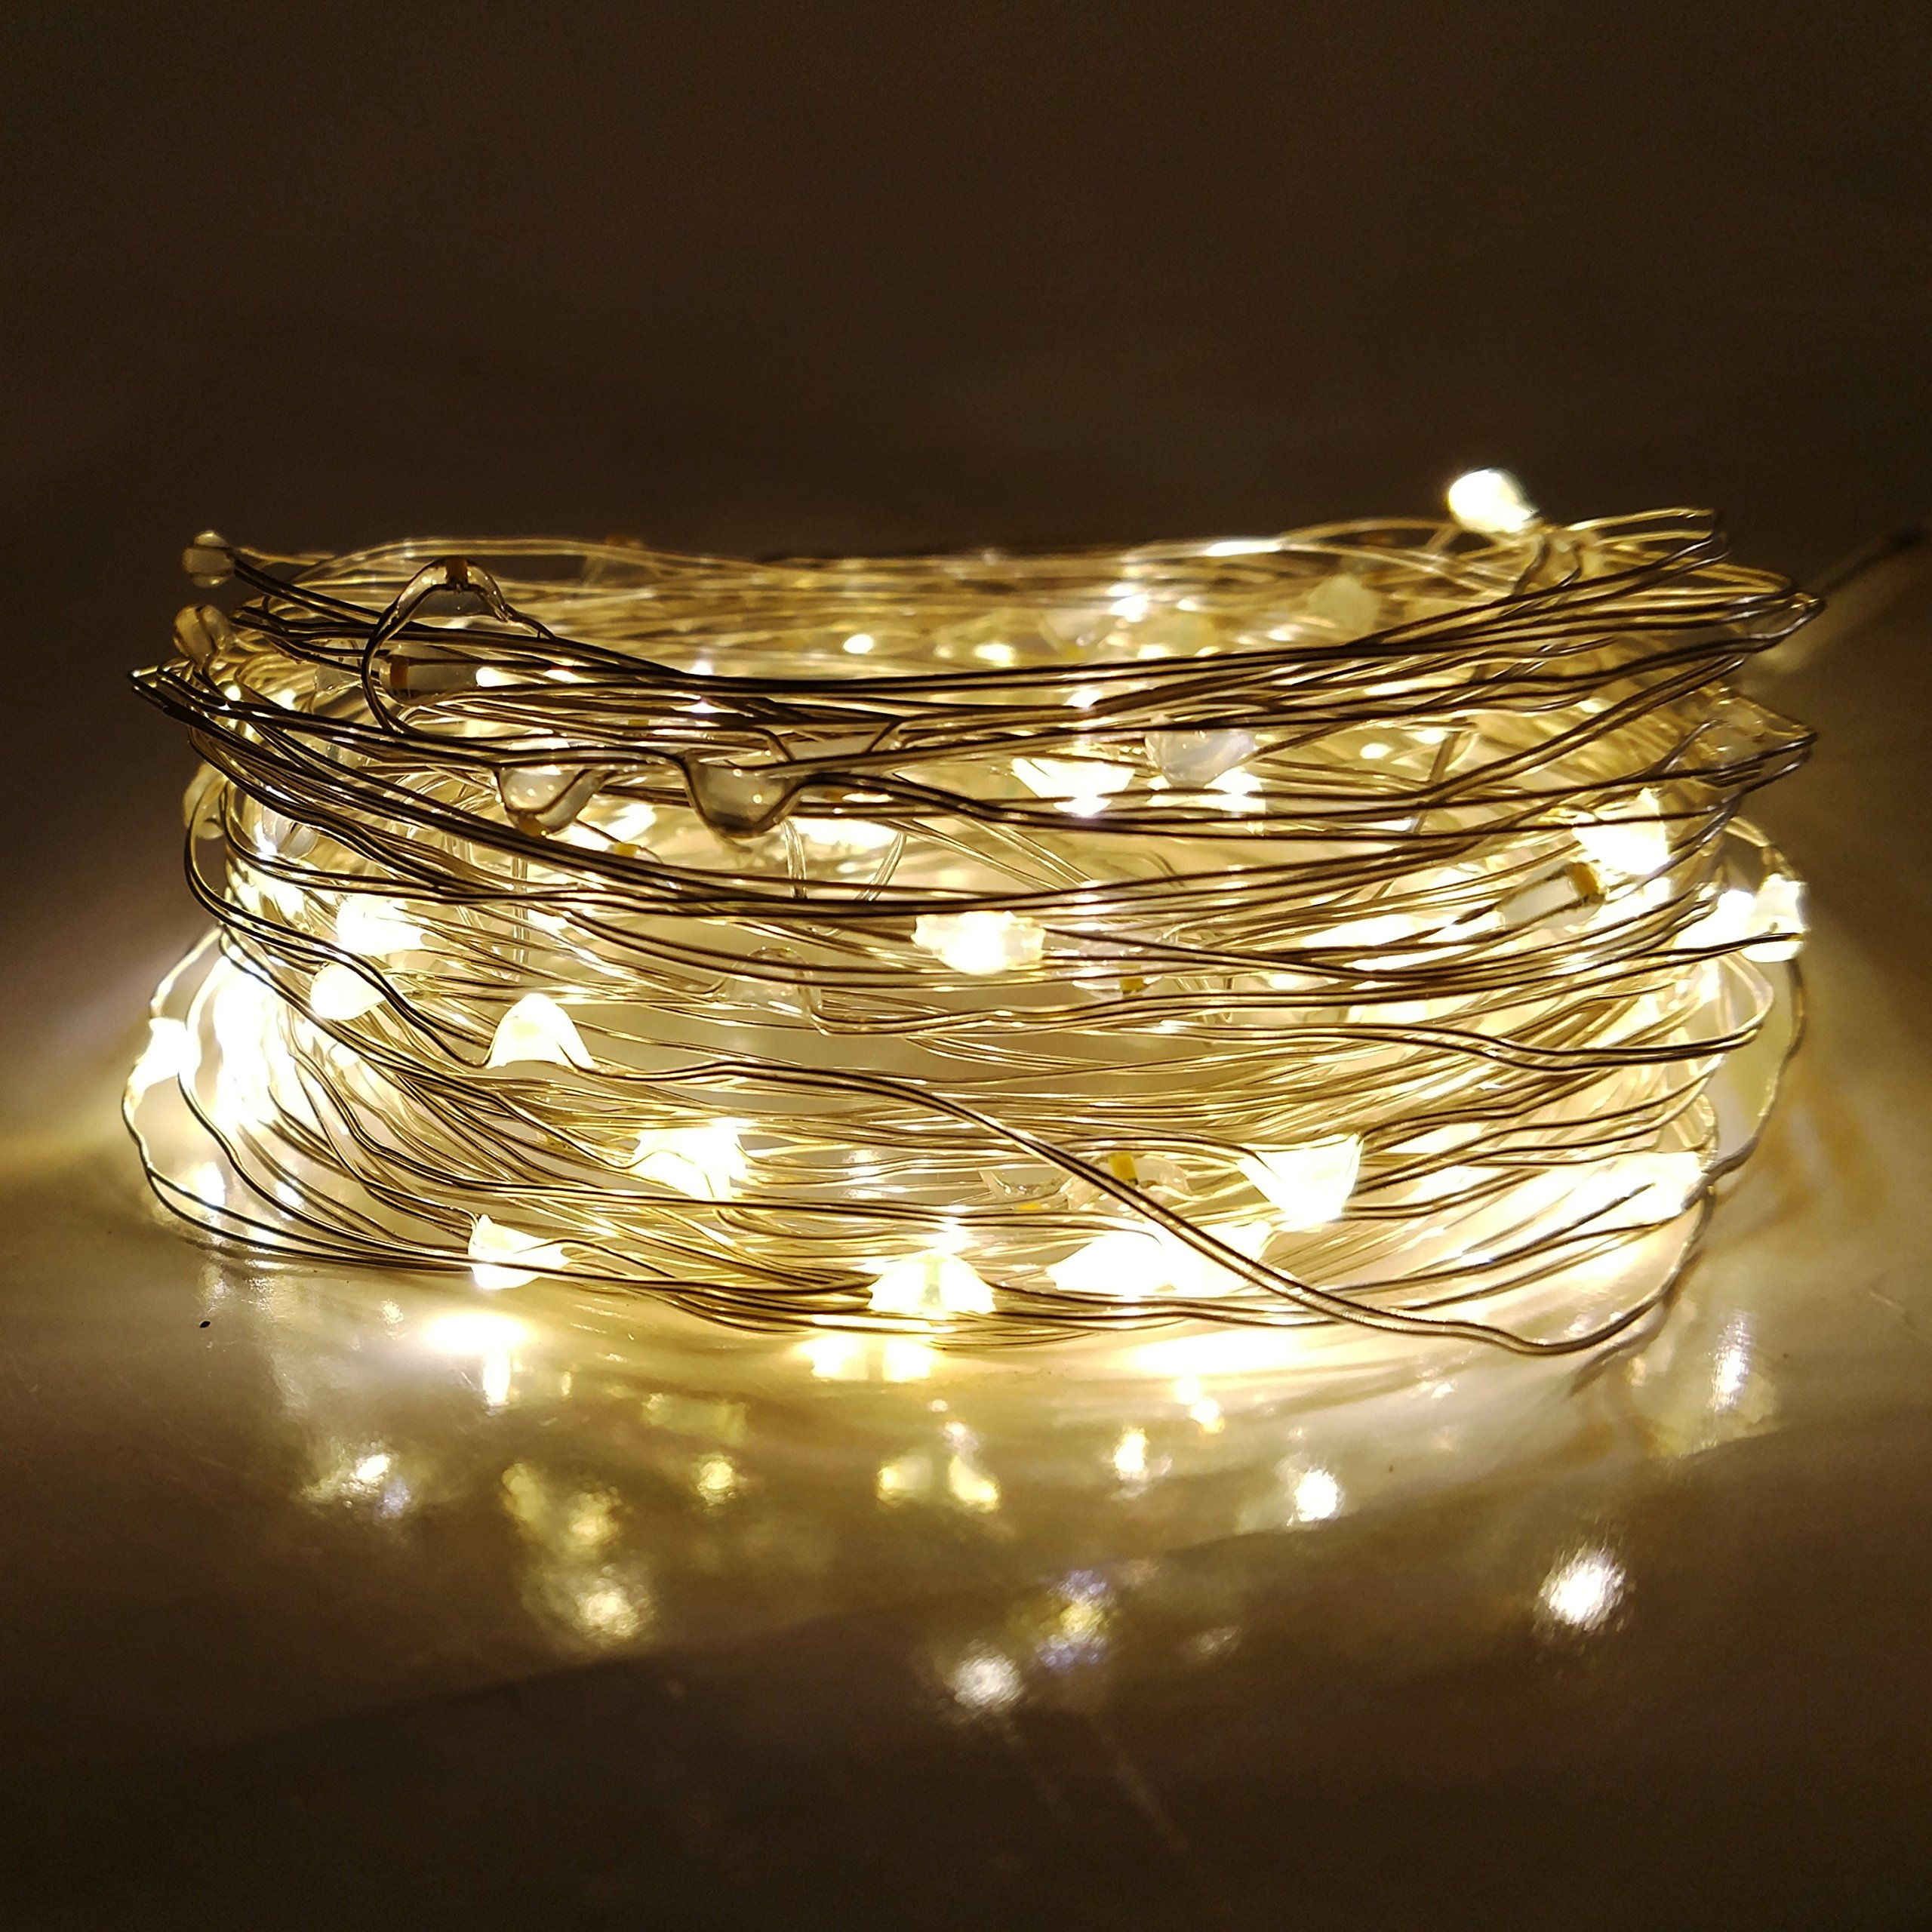 Hometown Evolution, Inc. Solar Powered Micro LED String Lights - 100 LED, 33 Feet - Warm White, 8 Modes, Outdoor Waterproof for Gardens, Patios, Vases, Home, Parties and more by Hometown Evolution, Inc.